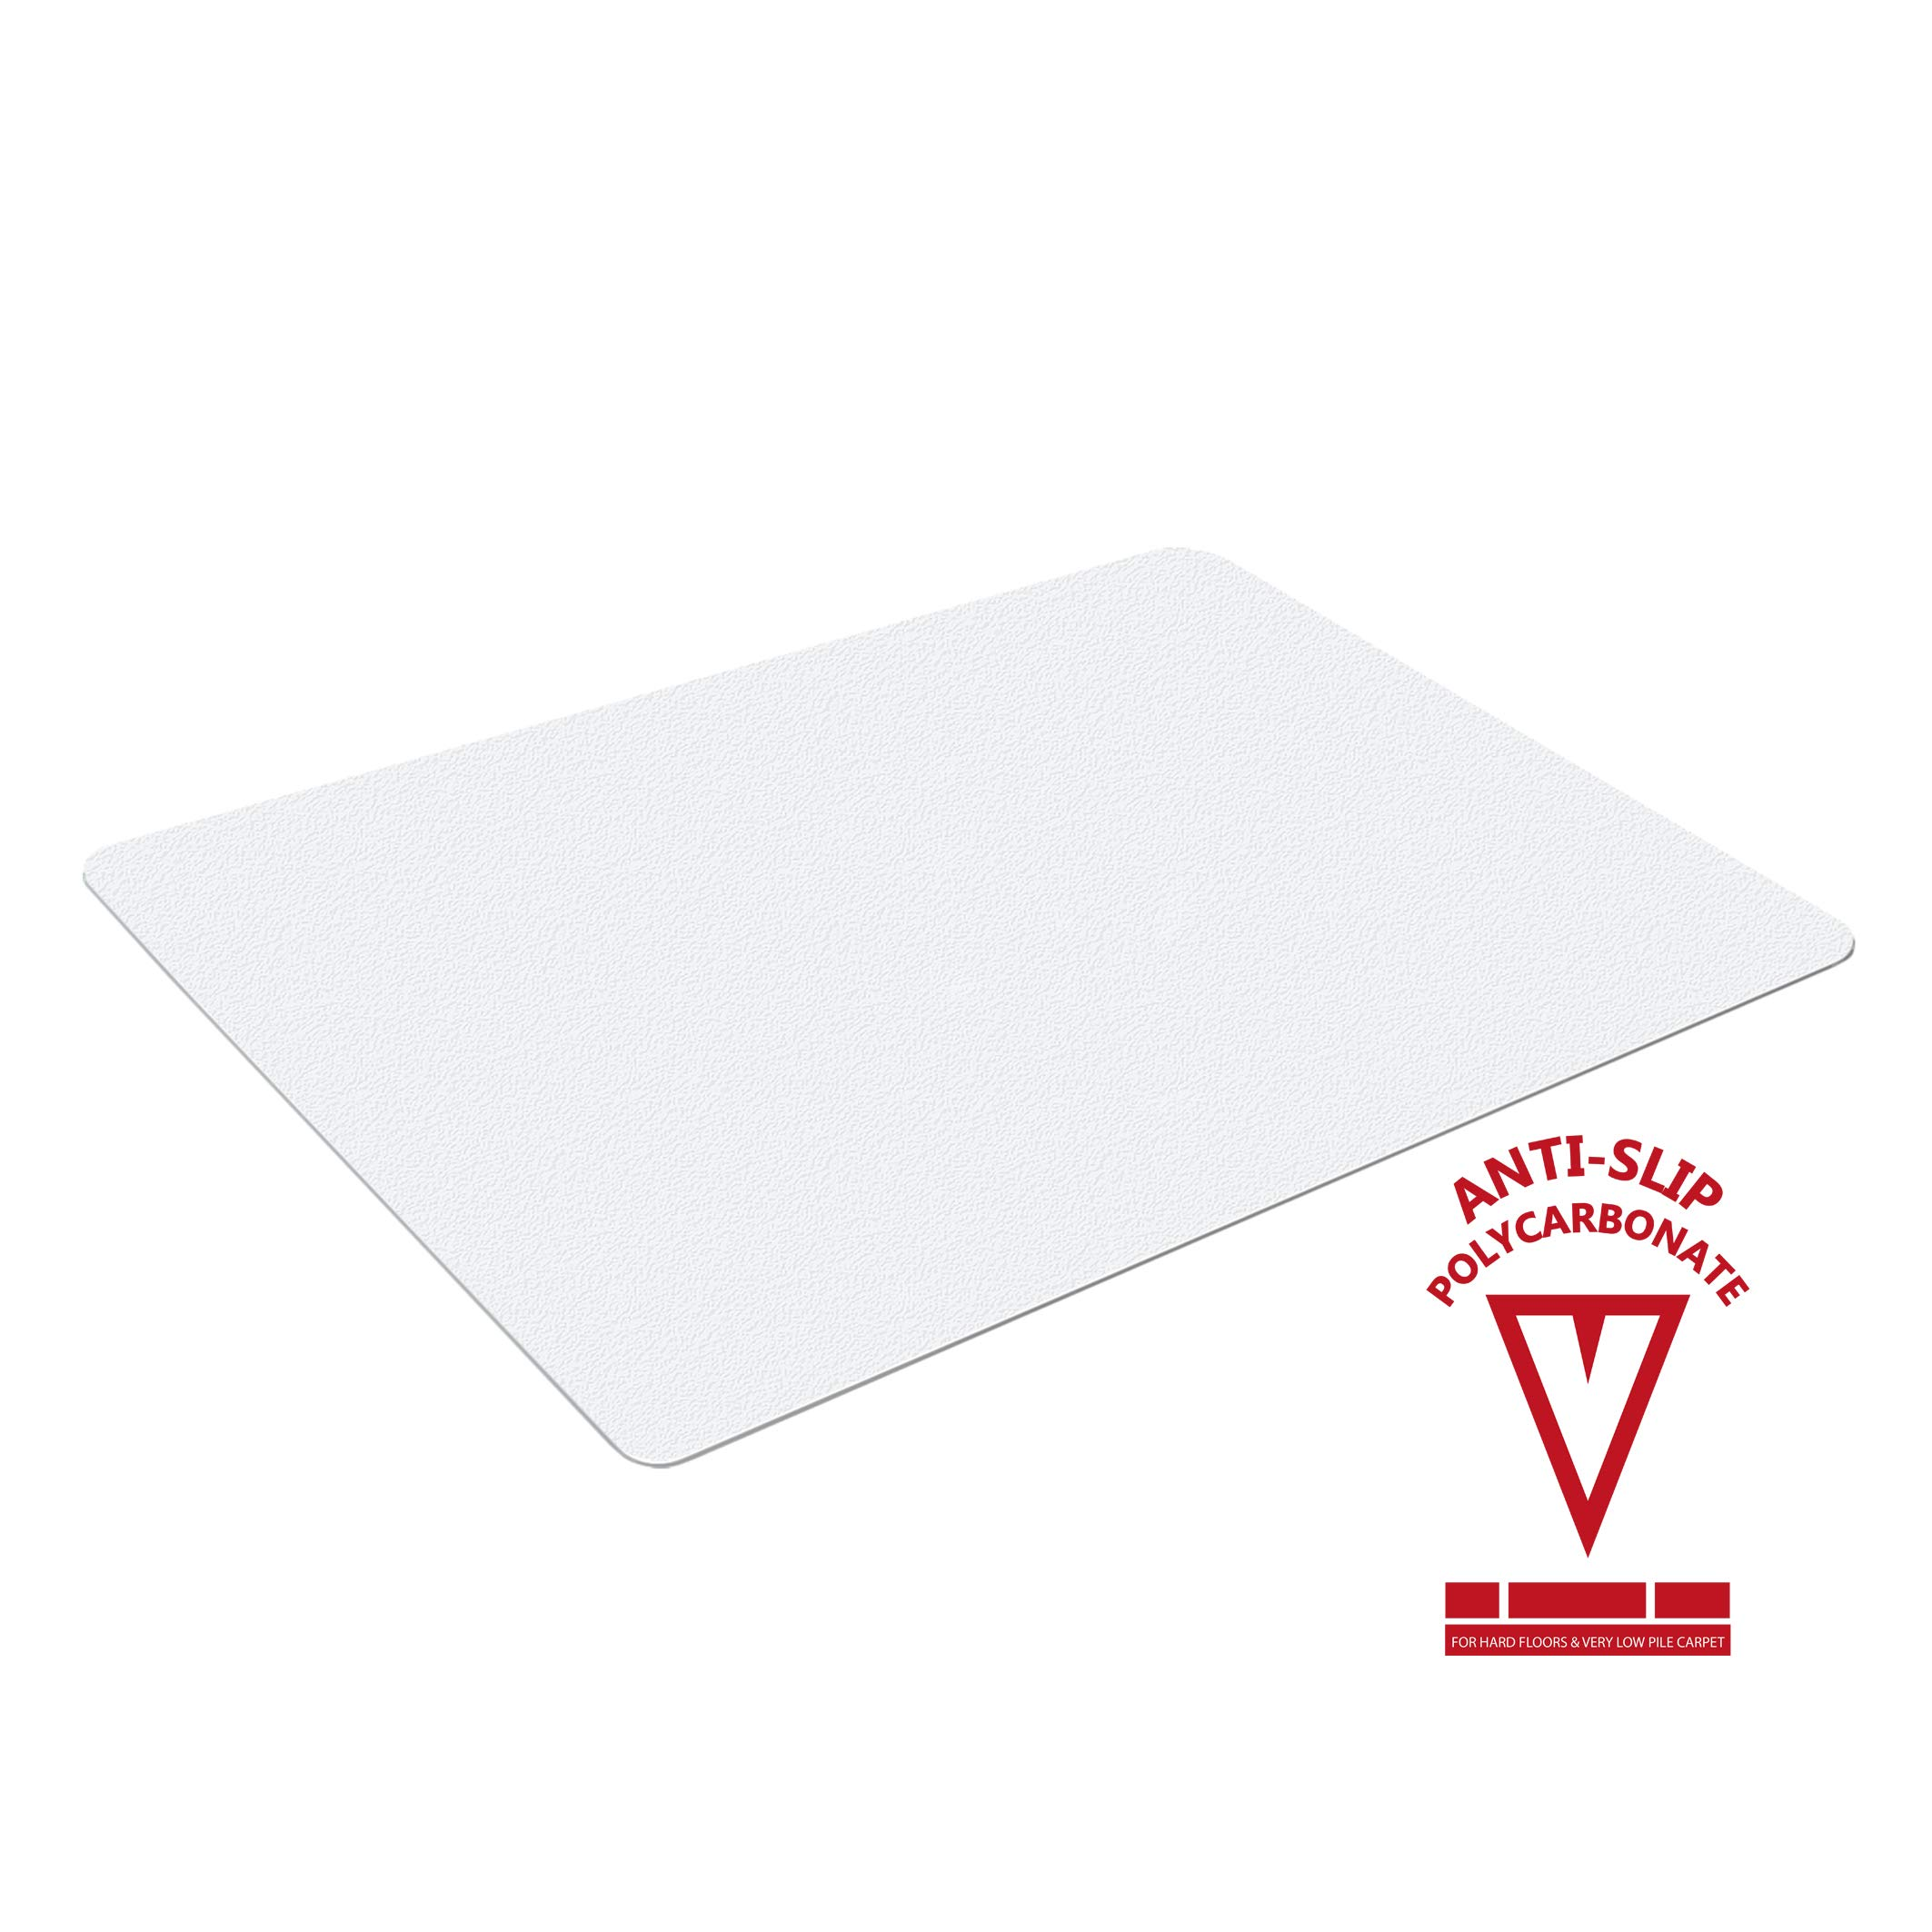 Marvelux 35'' x 47'' Polycarbonate Chair Mat for Hard Floors and Very Low Pile Carpets with Anti Slip Backing for High Adherence   Rectangular   Hardwood Floor Protector   Shipped Flat